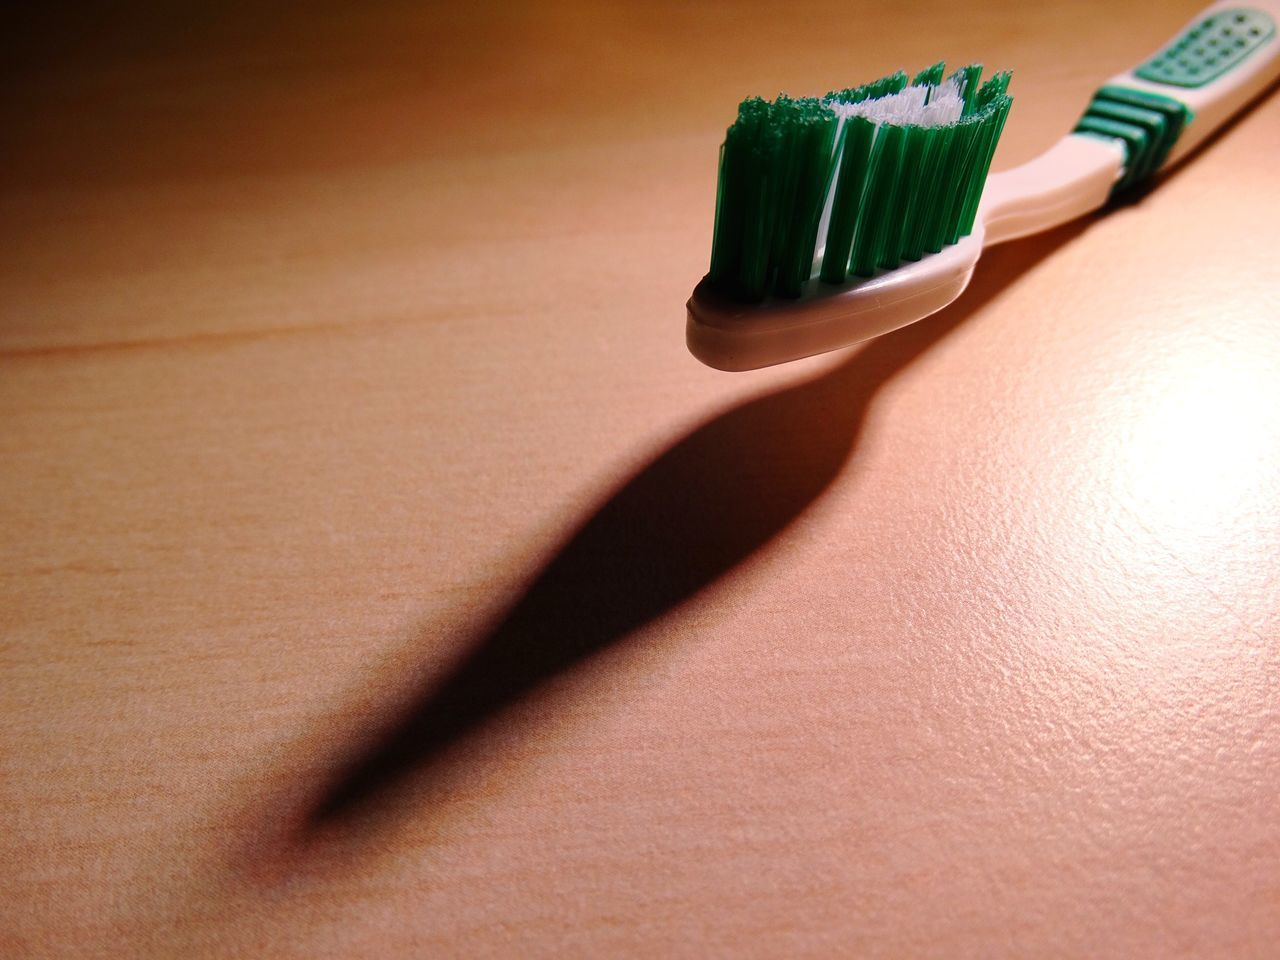 Toothbrush and shadow. Shadow Indoors  Table No People Close-up Day Toothbrush Toothbrushes Shadows Dentist Clean Brush Brushing Teeth  Cleaning Teeth Teeth Hygiene Shadows & Lights Green Plastic Healthy Lifestyle Healthy Healthcare And Medicine Health